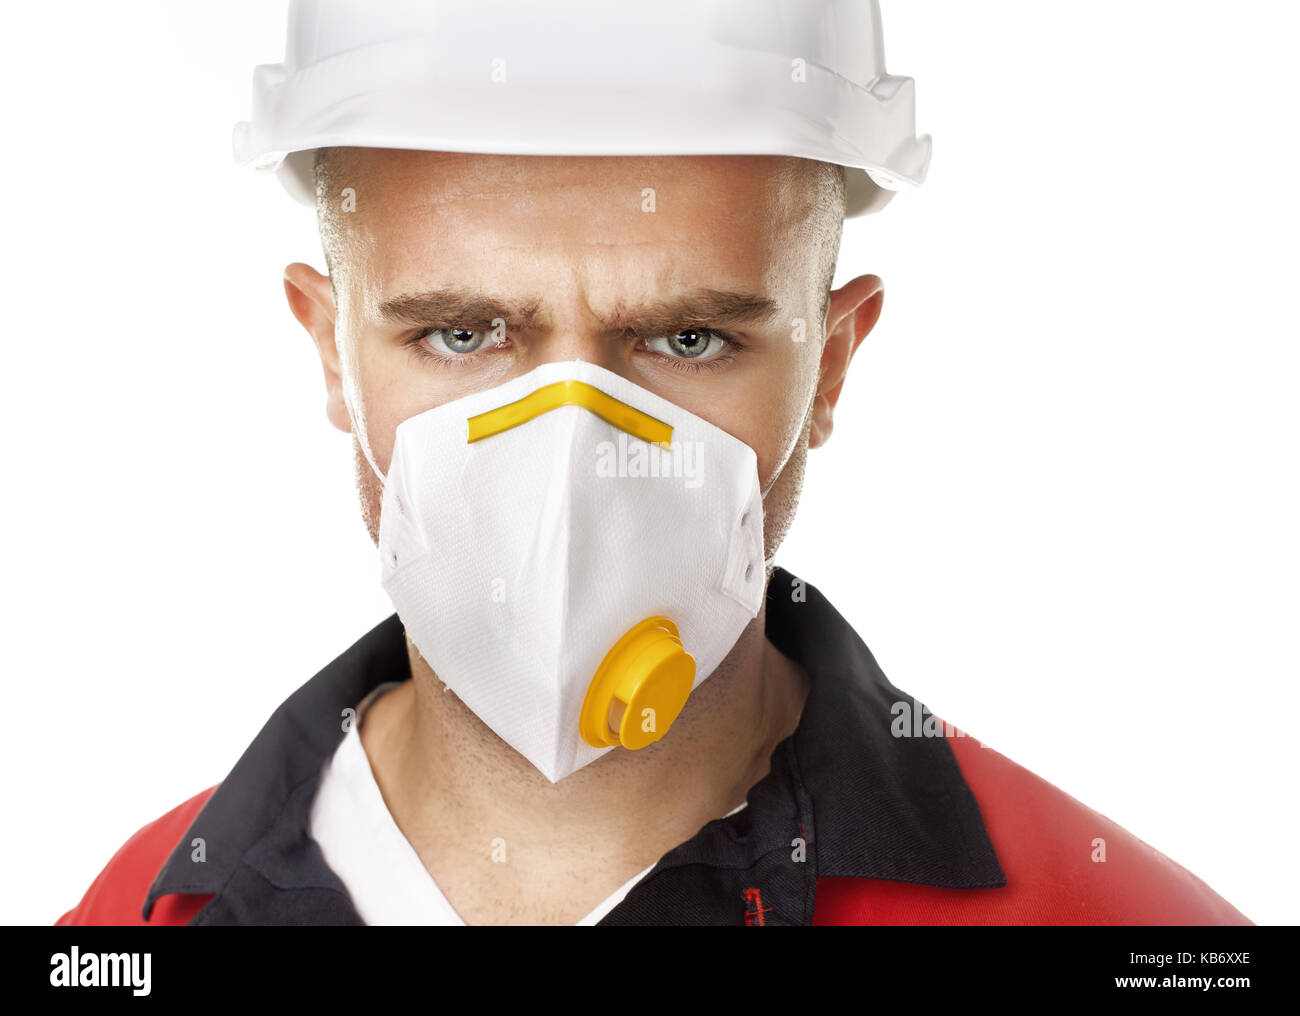 Closeup portrait of serious worker wearing respirator and white helmet isolated on white background - Stock Image